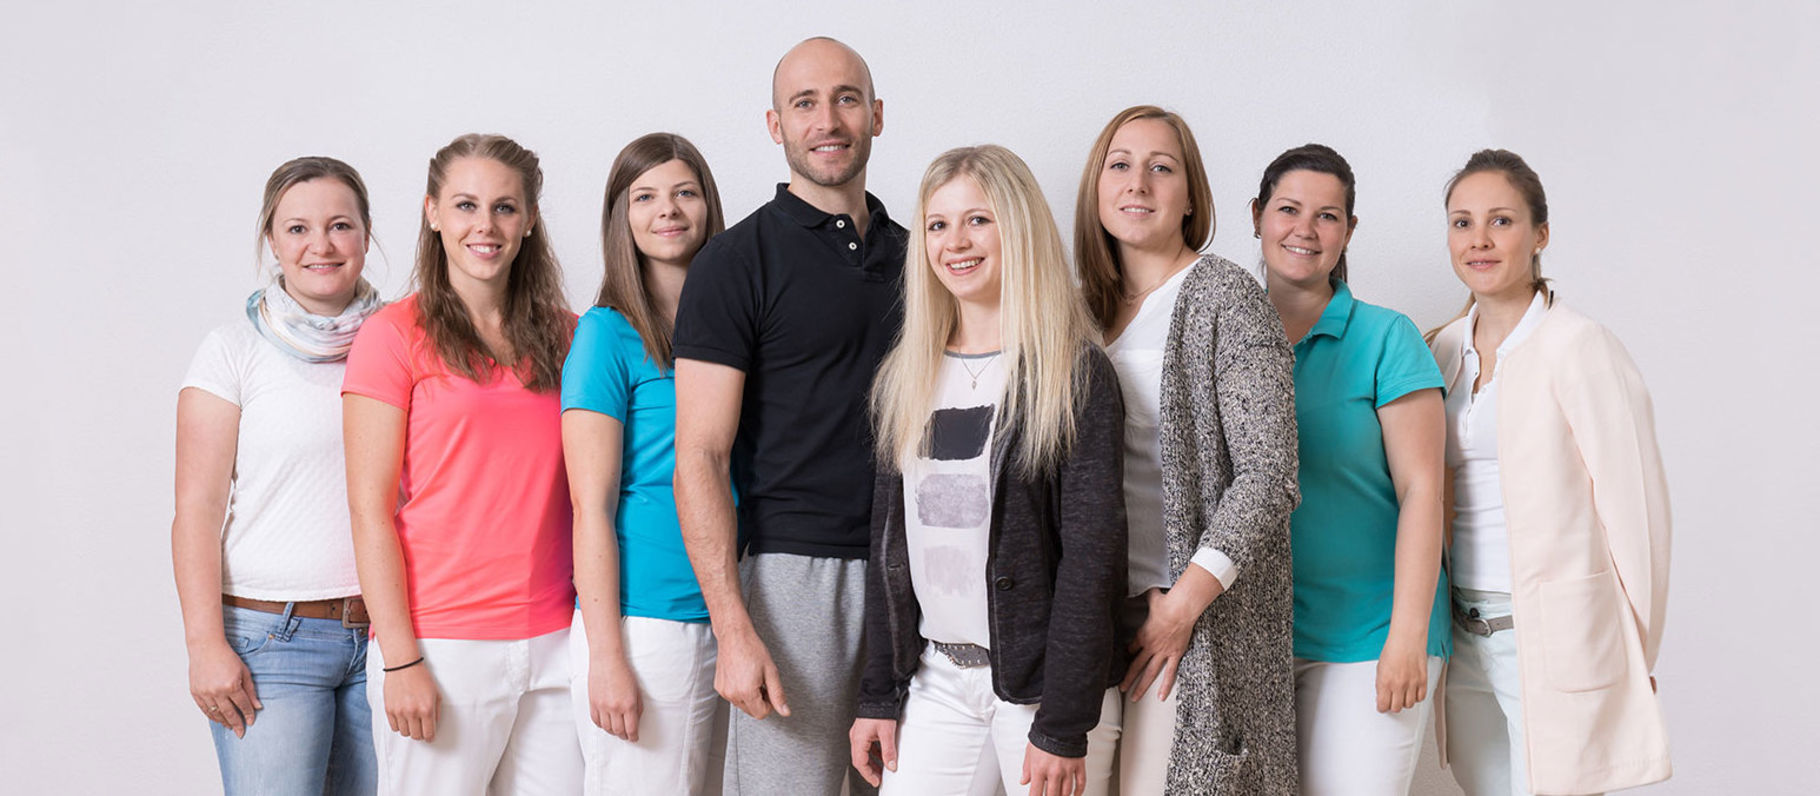 Therapiezentrum Radl Team-Bild